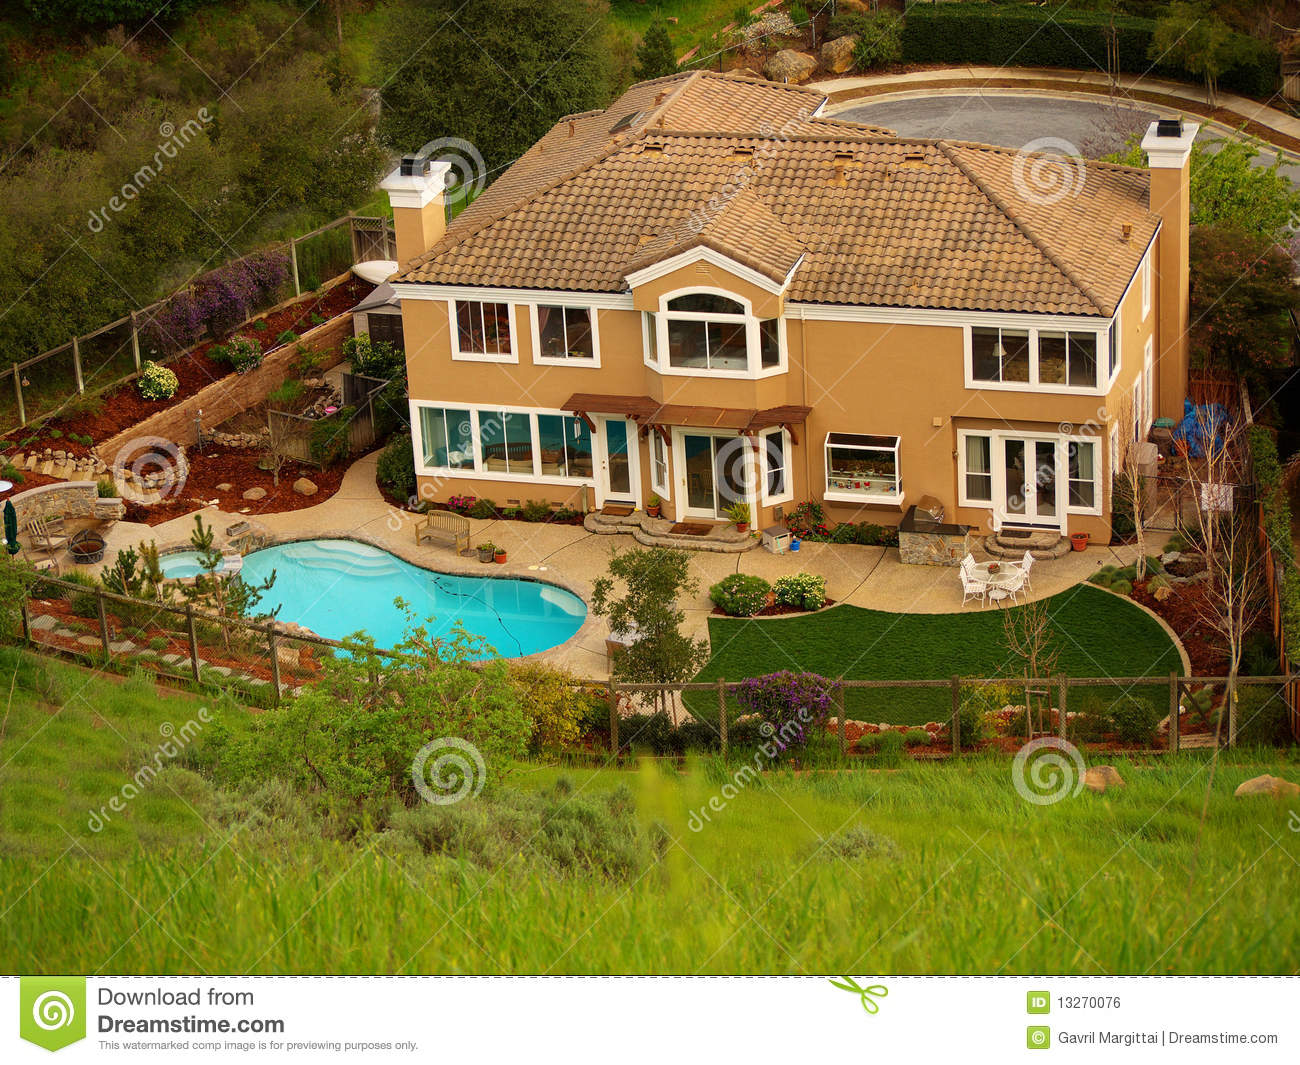 Luxury home with pool in the backyard stock photo image for Free luxury home images